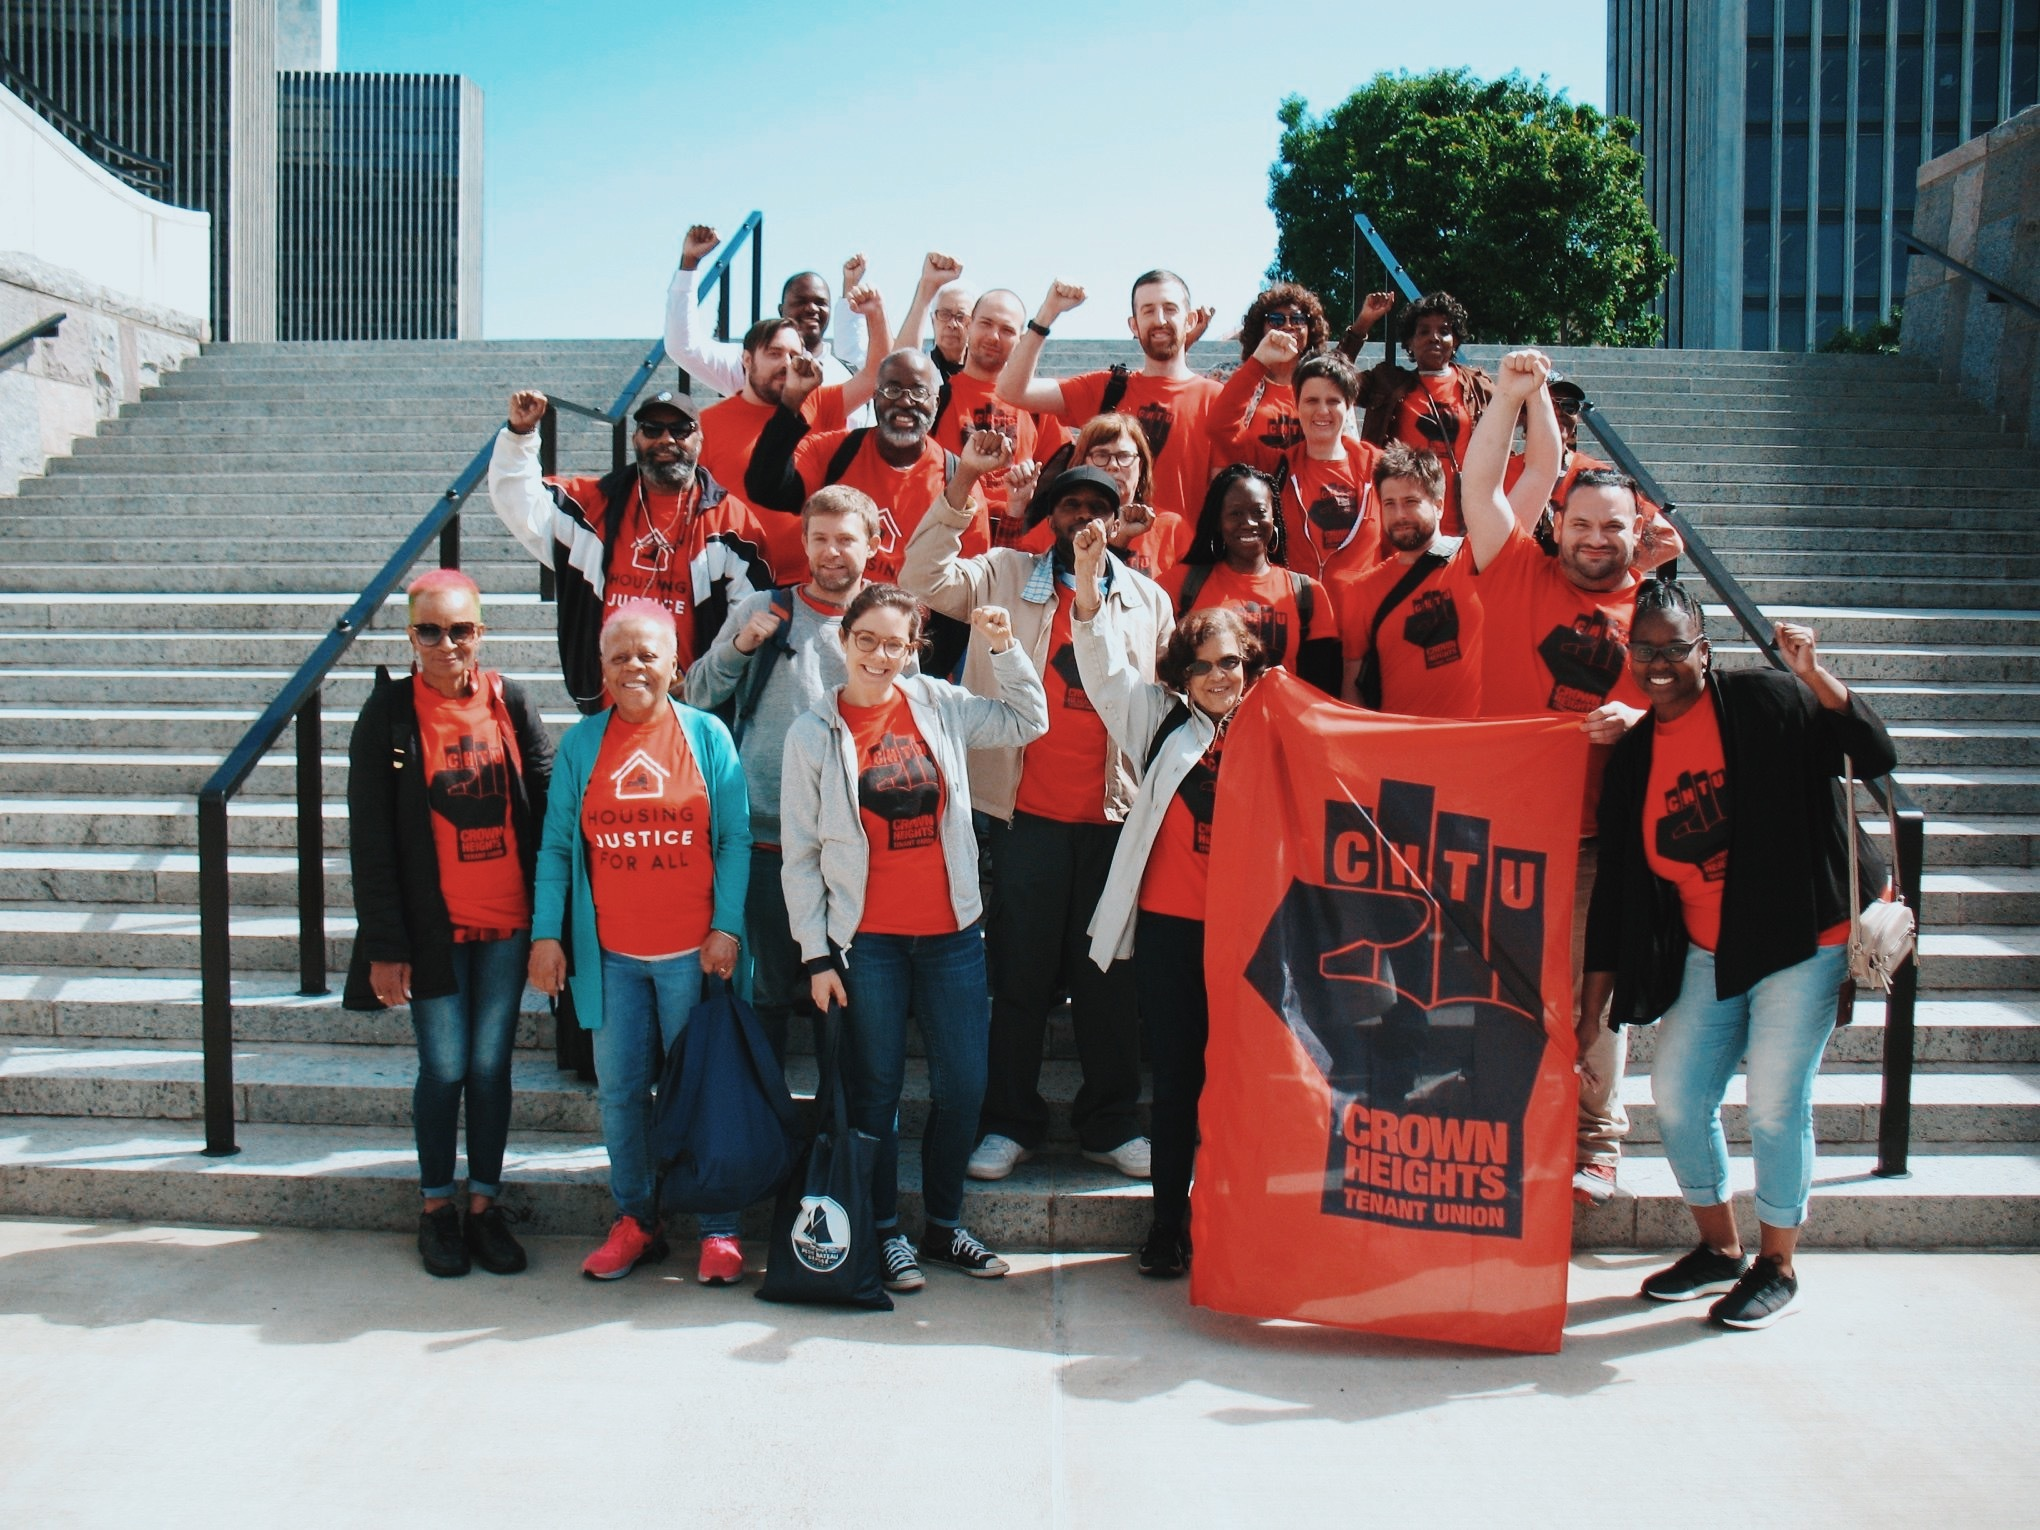 A group portrait of the Crown Heights Tenants Union standing on a concrete staircase. holding a banner There are about two dozen people all wearing red shirts and raising their fists.